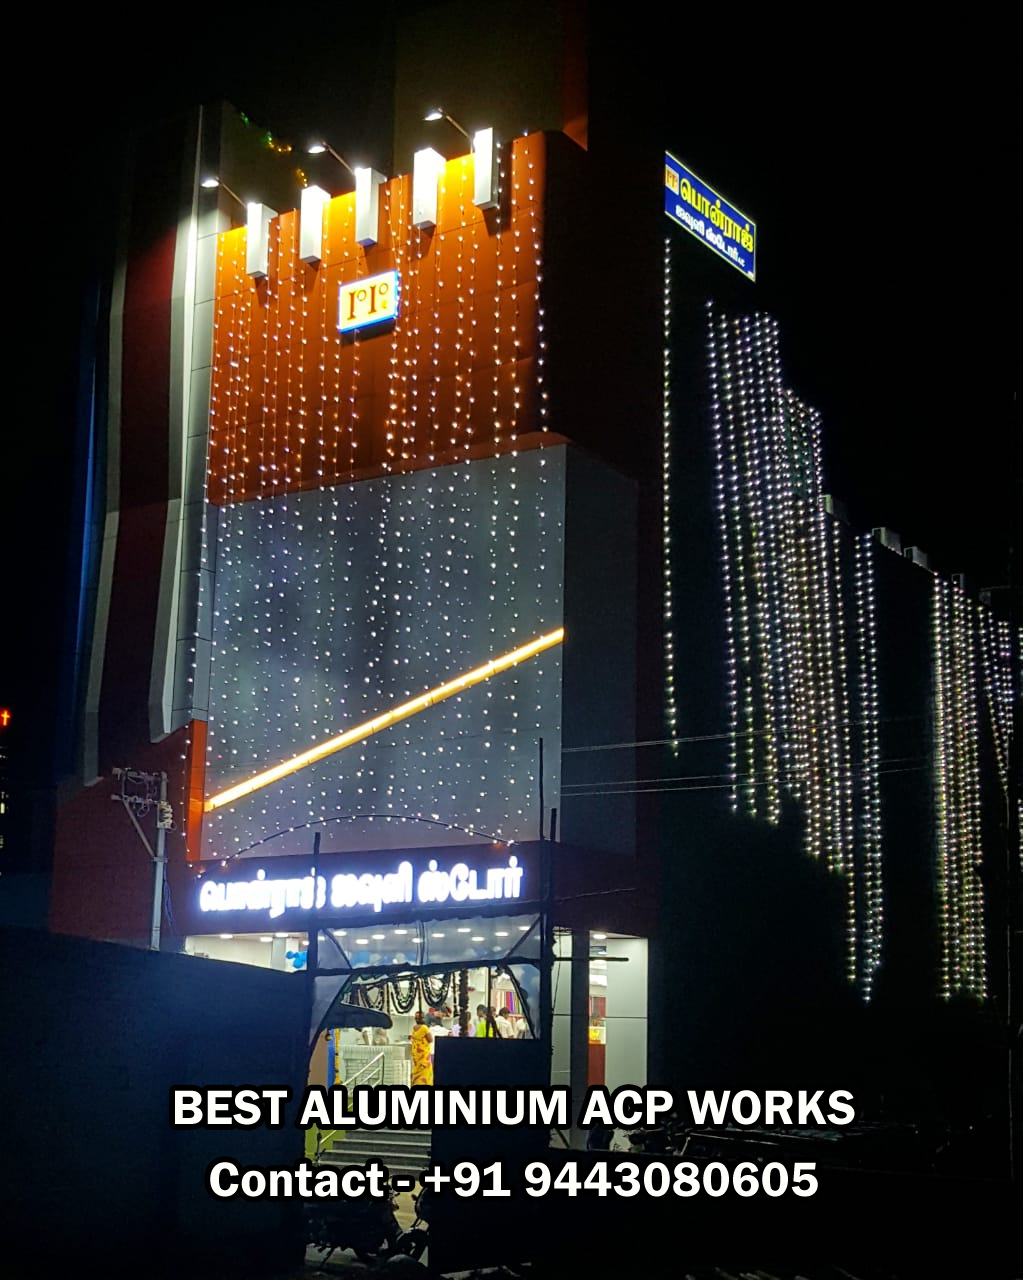 9443080605 - Acp Structural Glazing works in tirunelveli,Acp Structural Glazing works in tuticorin,Acp Structural Glazing works in nagercoil,Acp Structural Glazing works in tenkasi,Acp Structural Glazing works in sankarankovil,Acp Structural Glazing works in trichy,Acp Structural Glazing works in madurai,Acp Structural Glazing works in salem,Acp Structural Glazing works in erode,Acp Structural Glazing works in karur,Acp Structural Glazing works in kanyakumari,Acp Structural Glazing works in chennai